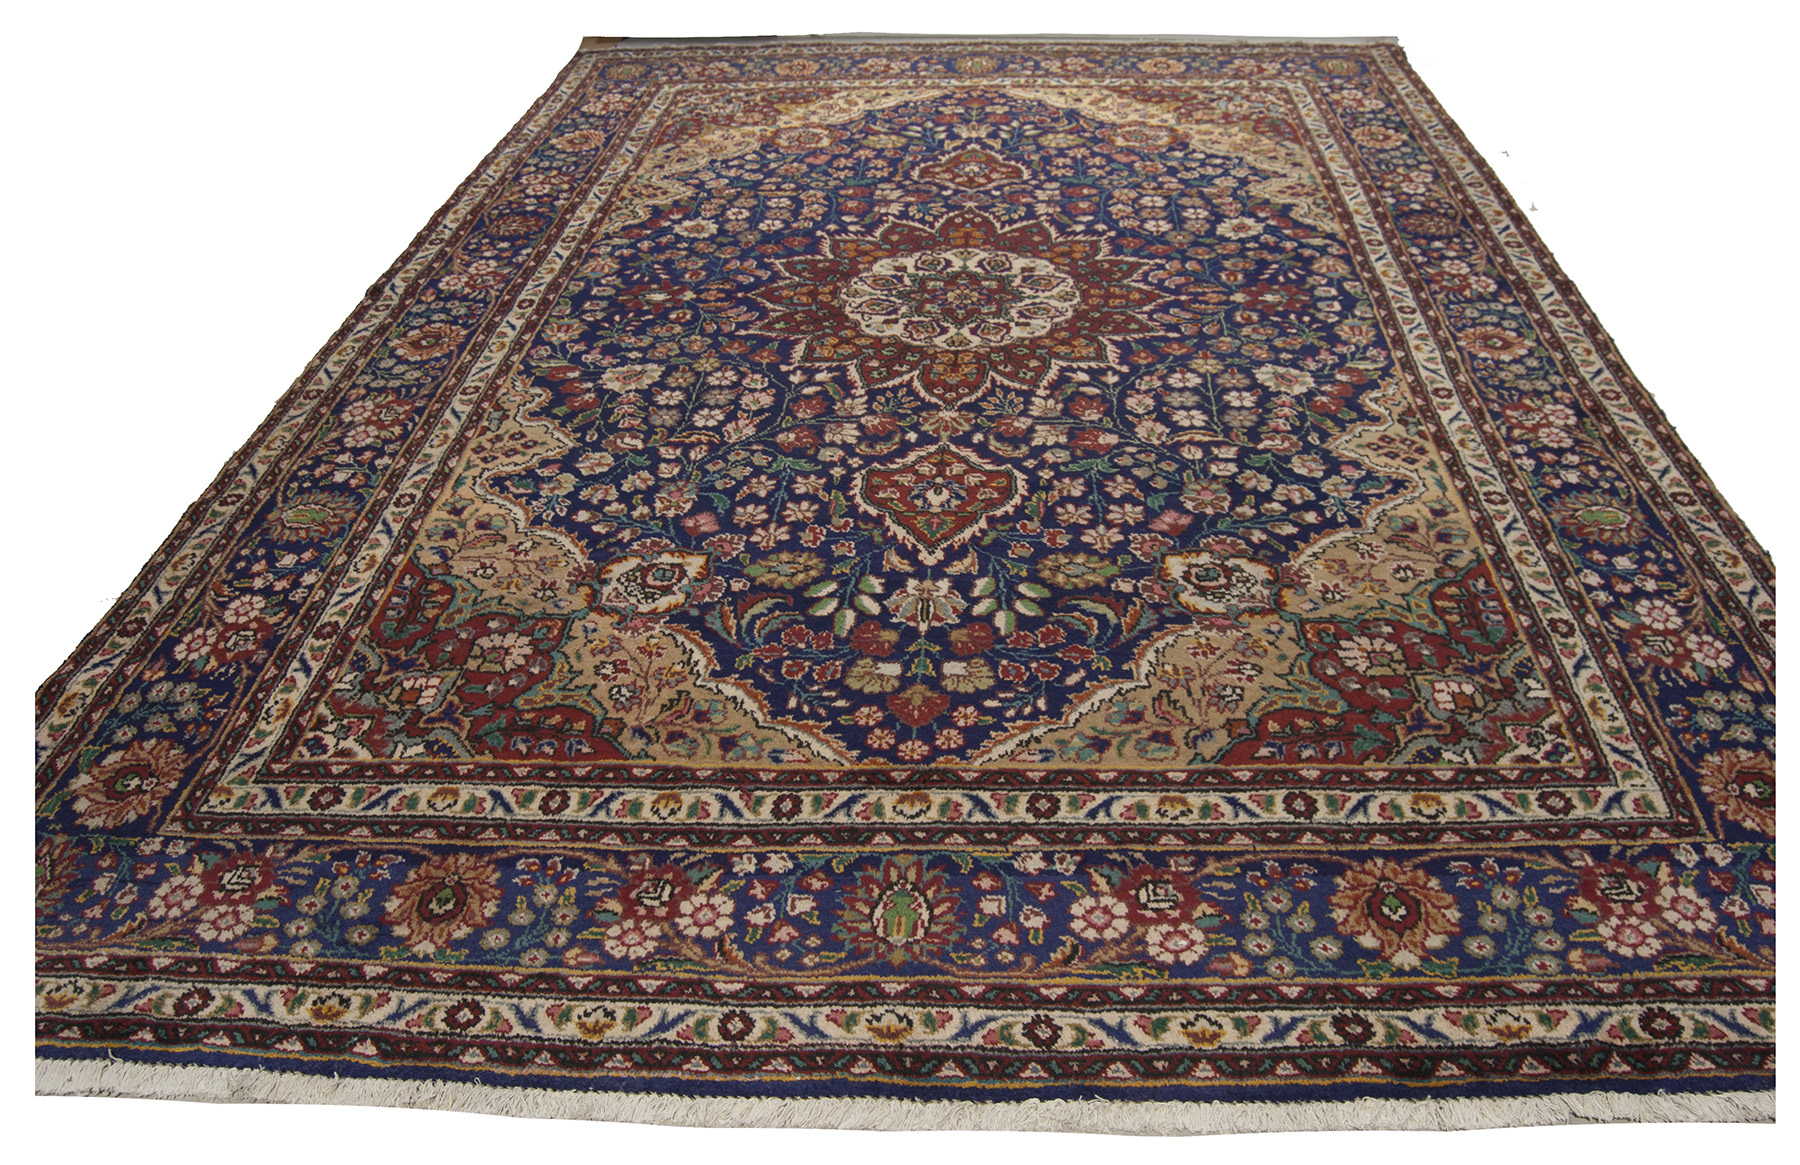 355x250 cm tappeto carpet tapis teppich alfombra rug hand made ebay. Black Bedroom Furniture Sets. Home Design Ideas